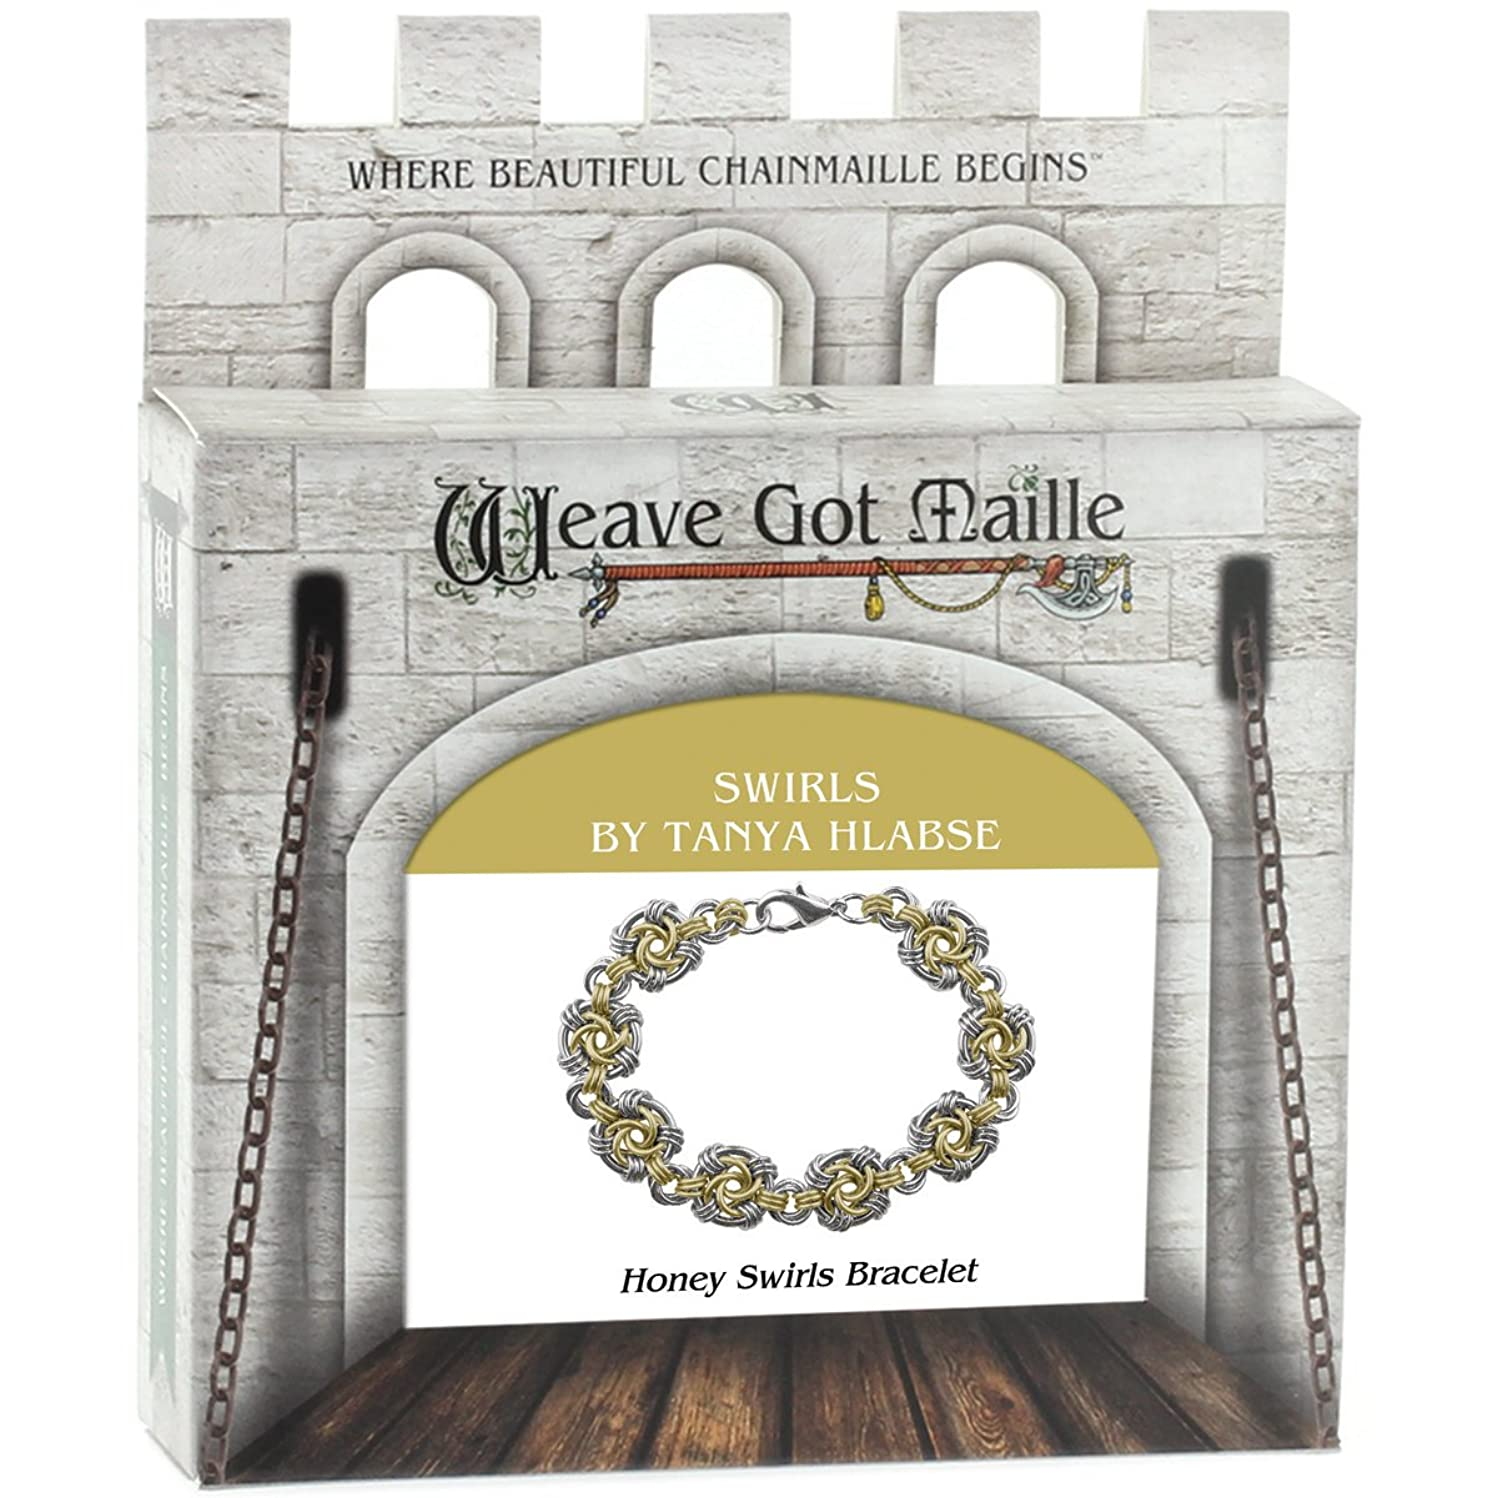 Weave Got Maille Honey Swirls Chain Maille Bracelet Kit